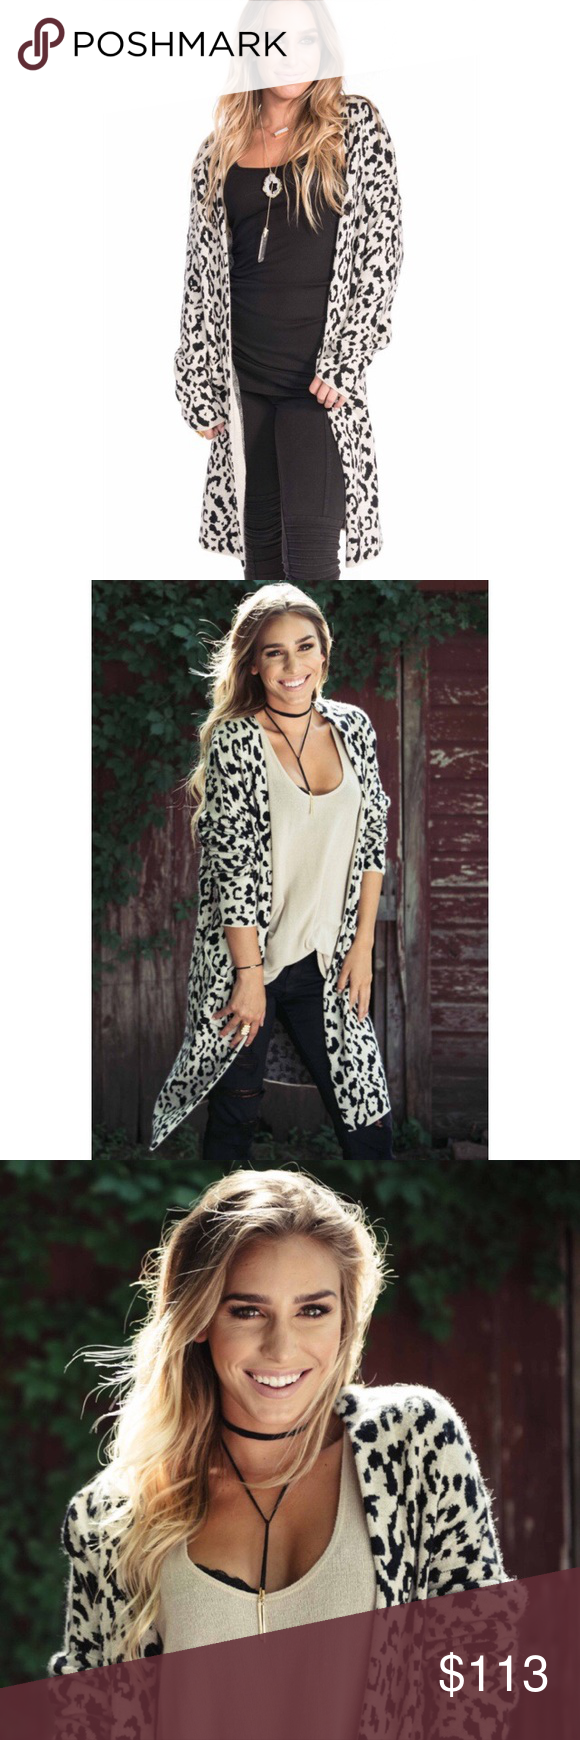 Black & White Leopard Print Duster Cardigan If you're looking to ...